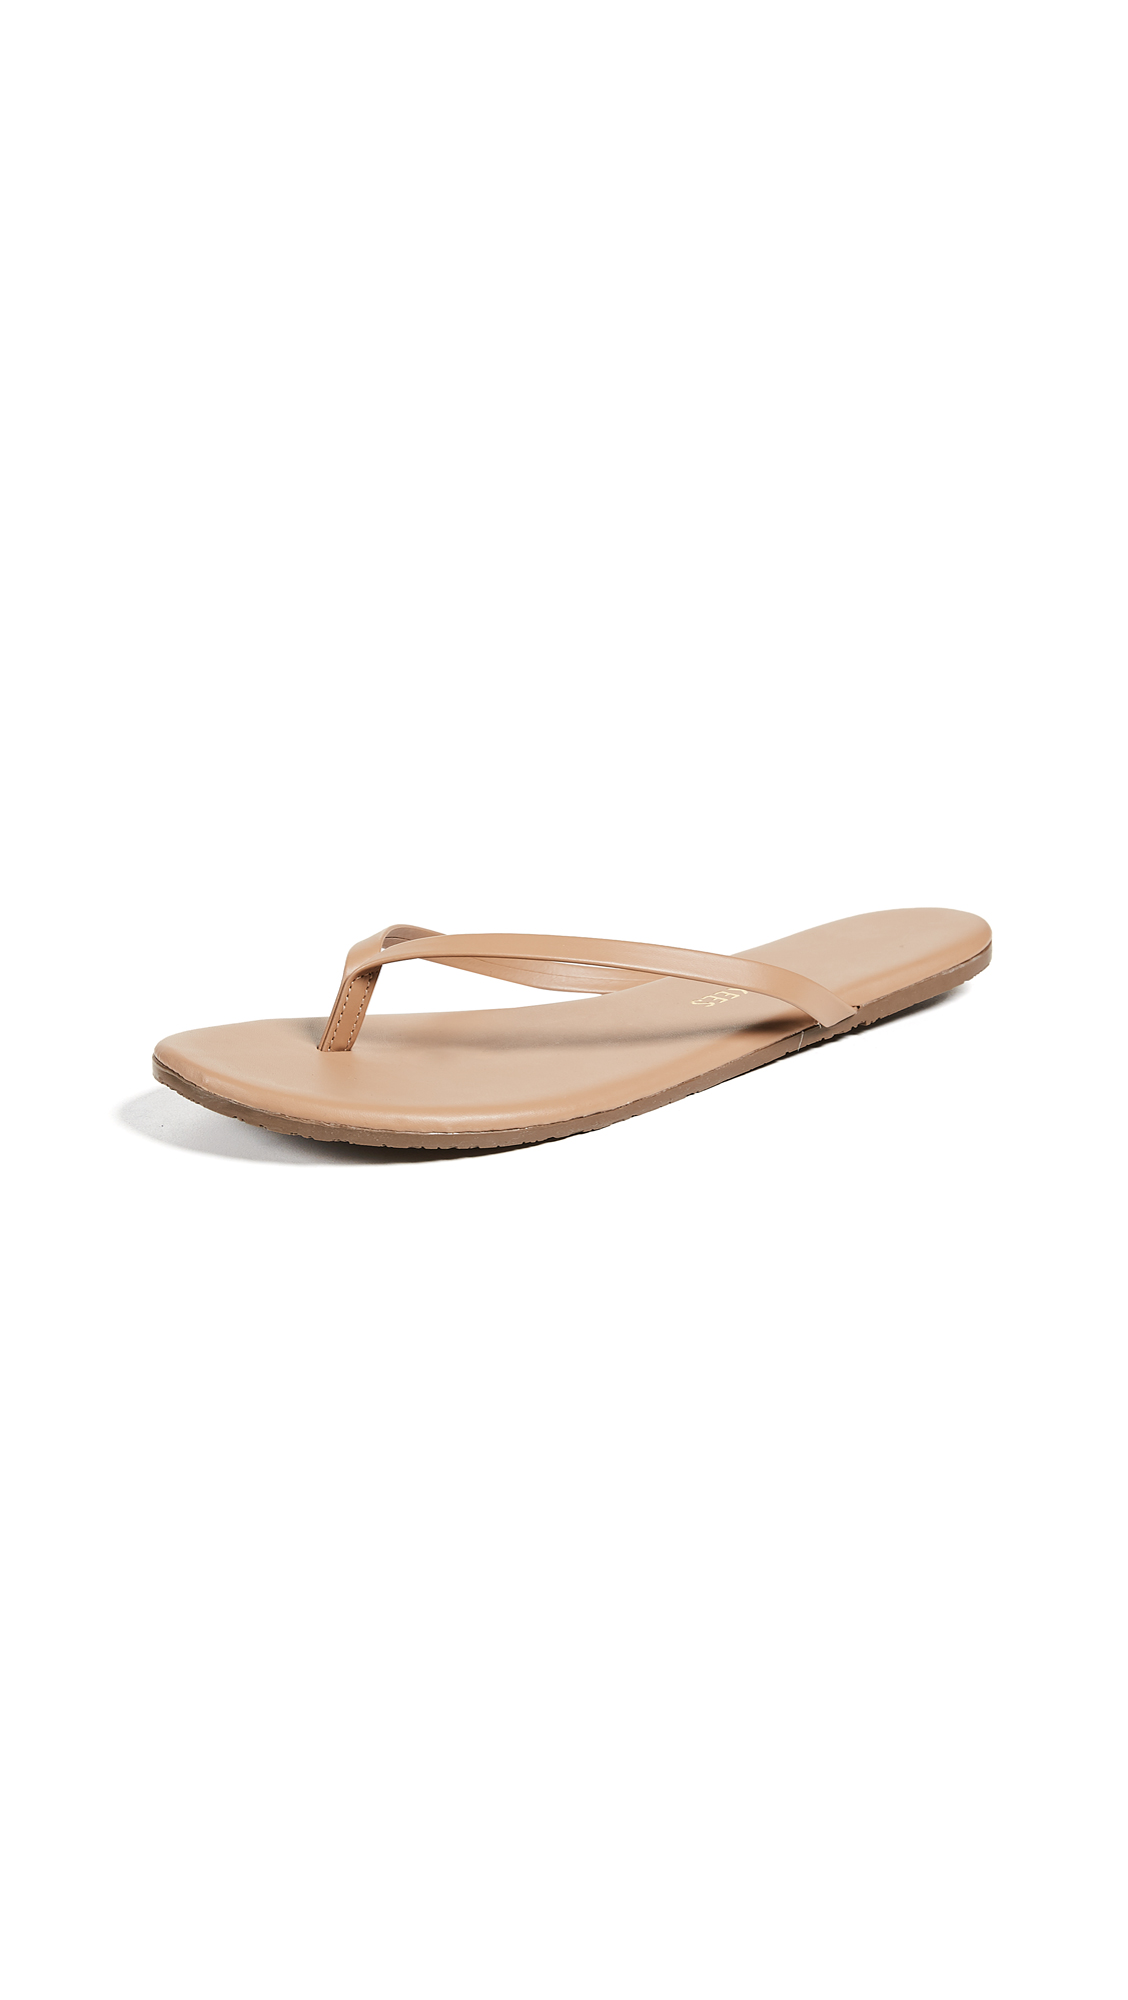 TKEES Foundations Flip Flops - Cocoa Butter